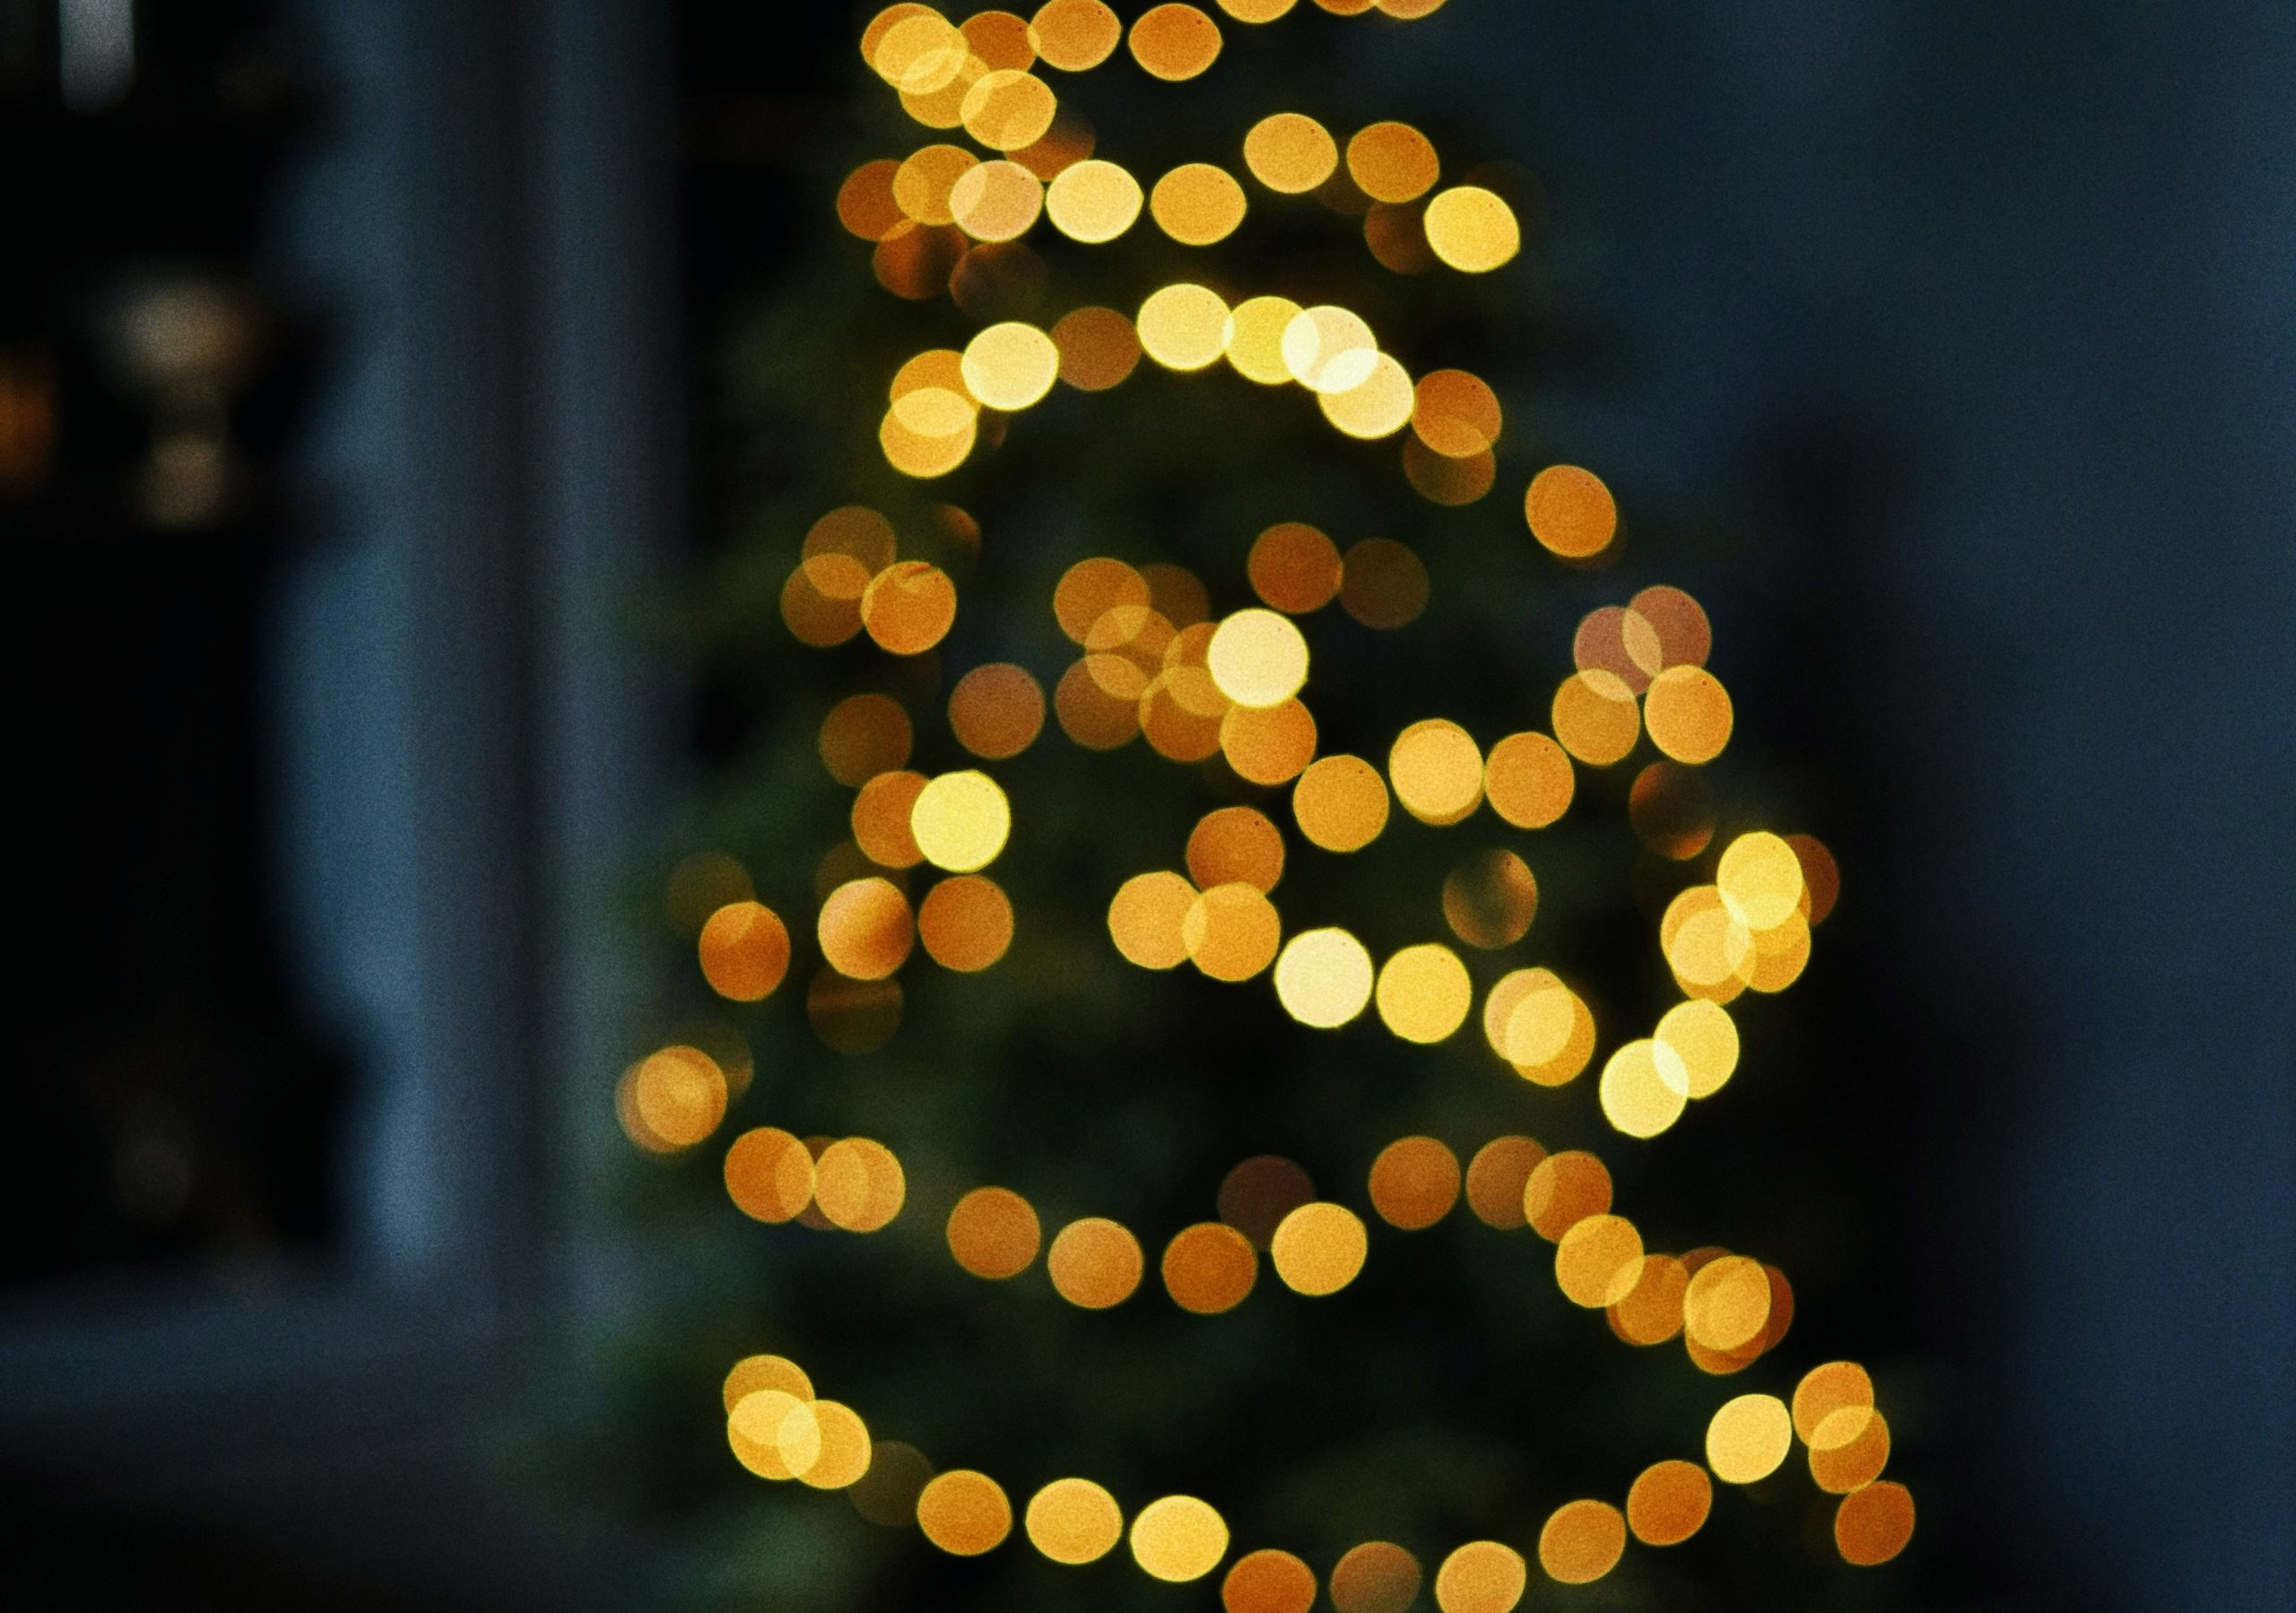 December 6: Christmas Party at the Geological Society